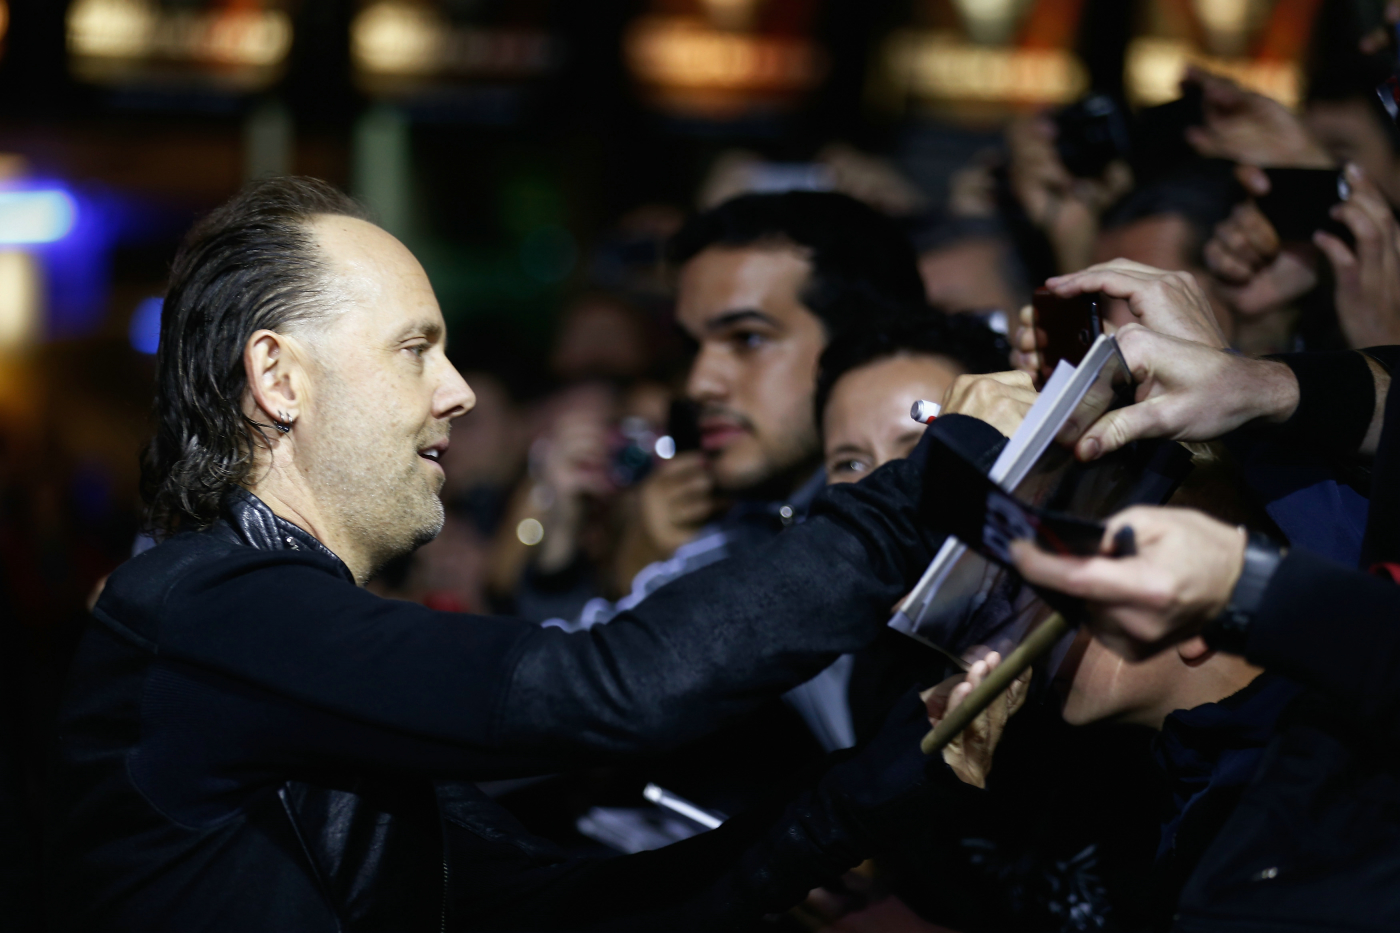 Bei der Premiere von Metallicas 'Through The Never' in Berlin, 12.09.2013